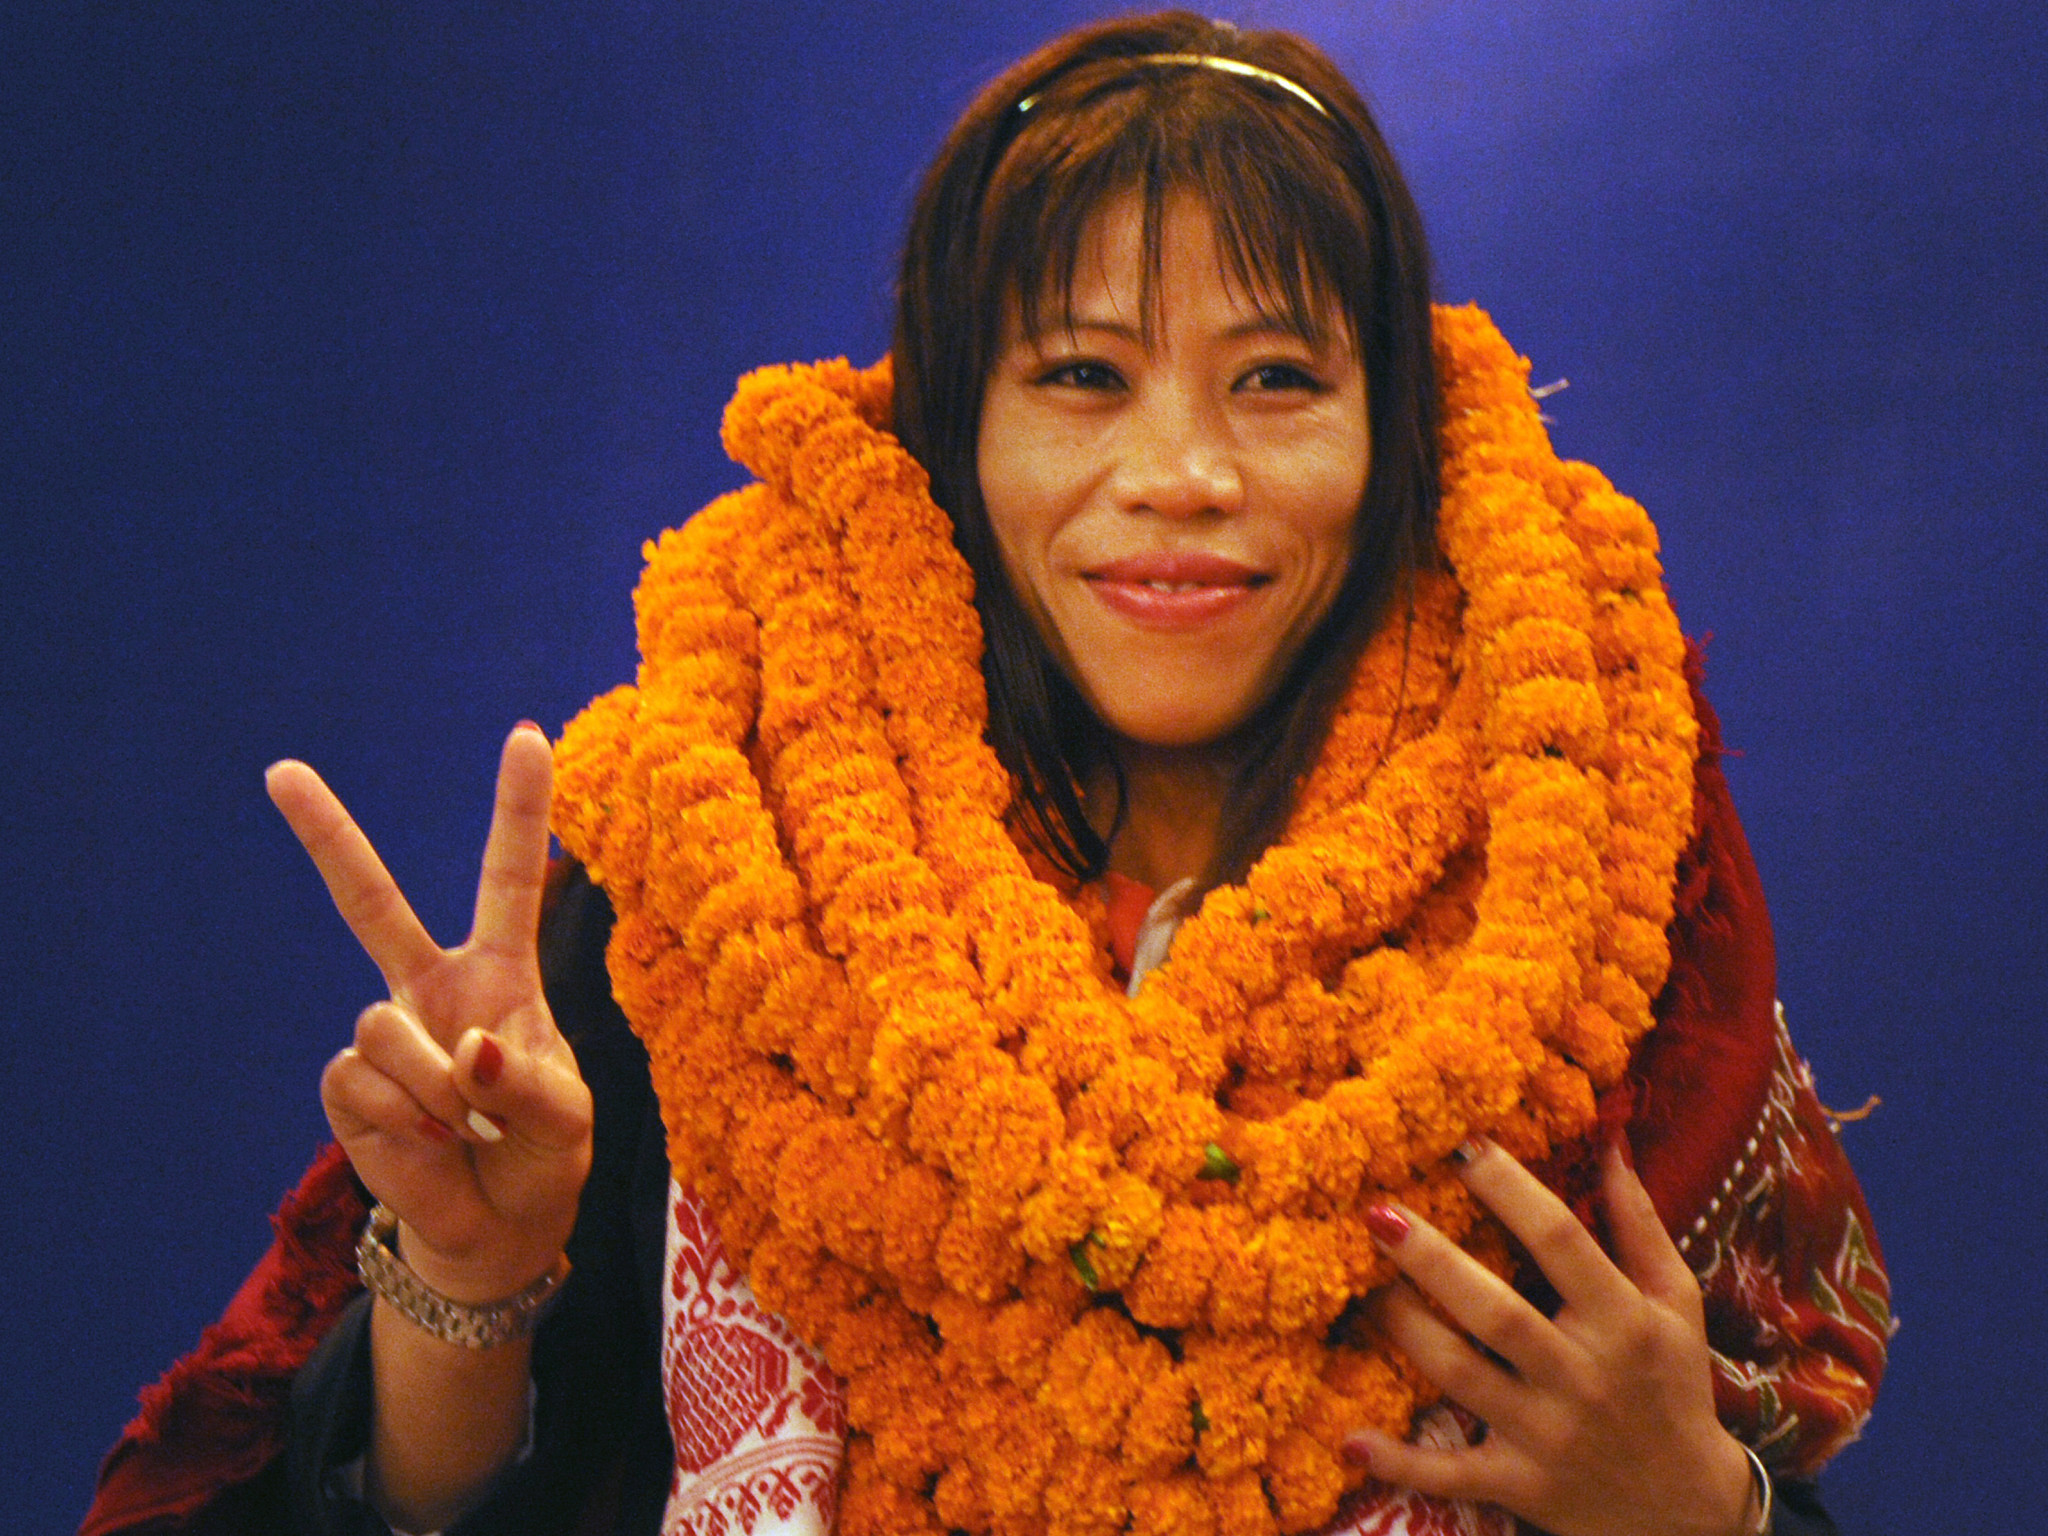 Five-time world champion Mary Kom is among members of the Indian boxing team at Gold Coast 2018, although there is no suggestion she has done anything wrong ©Getty Images